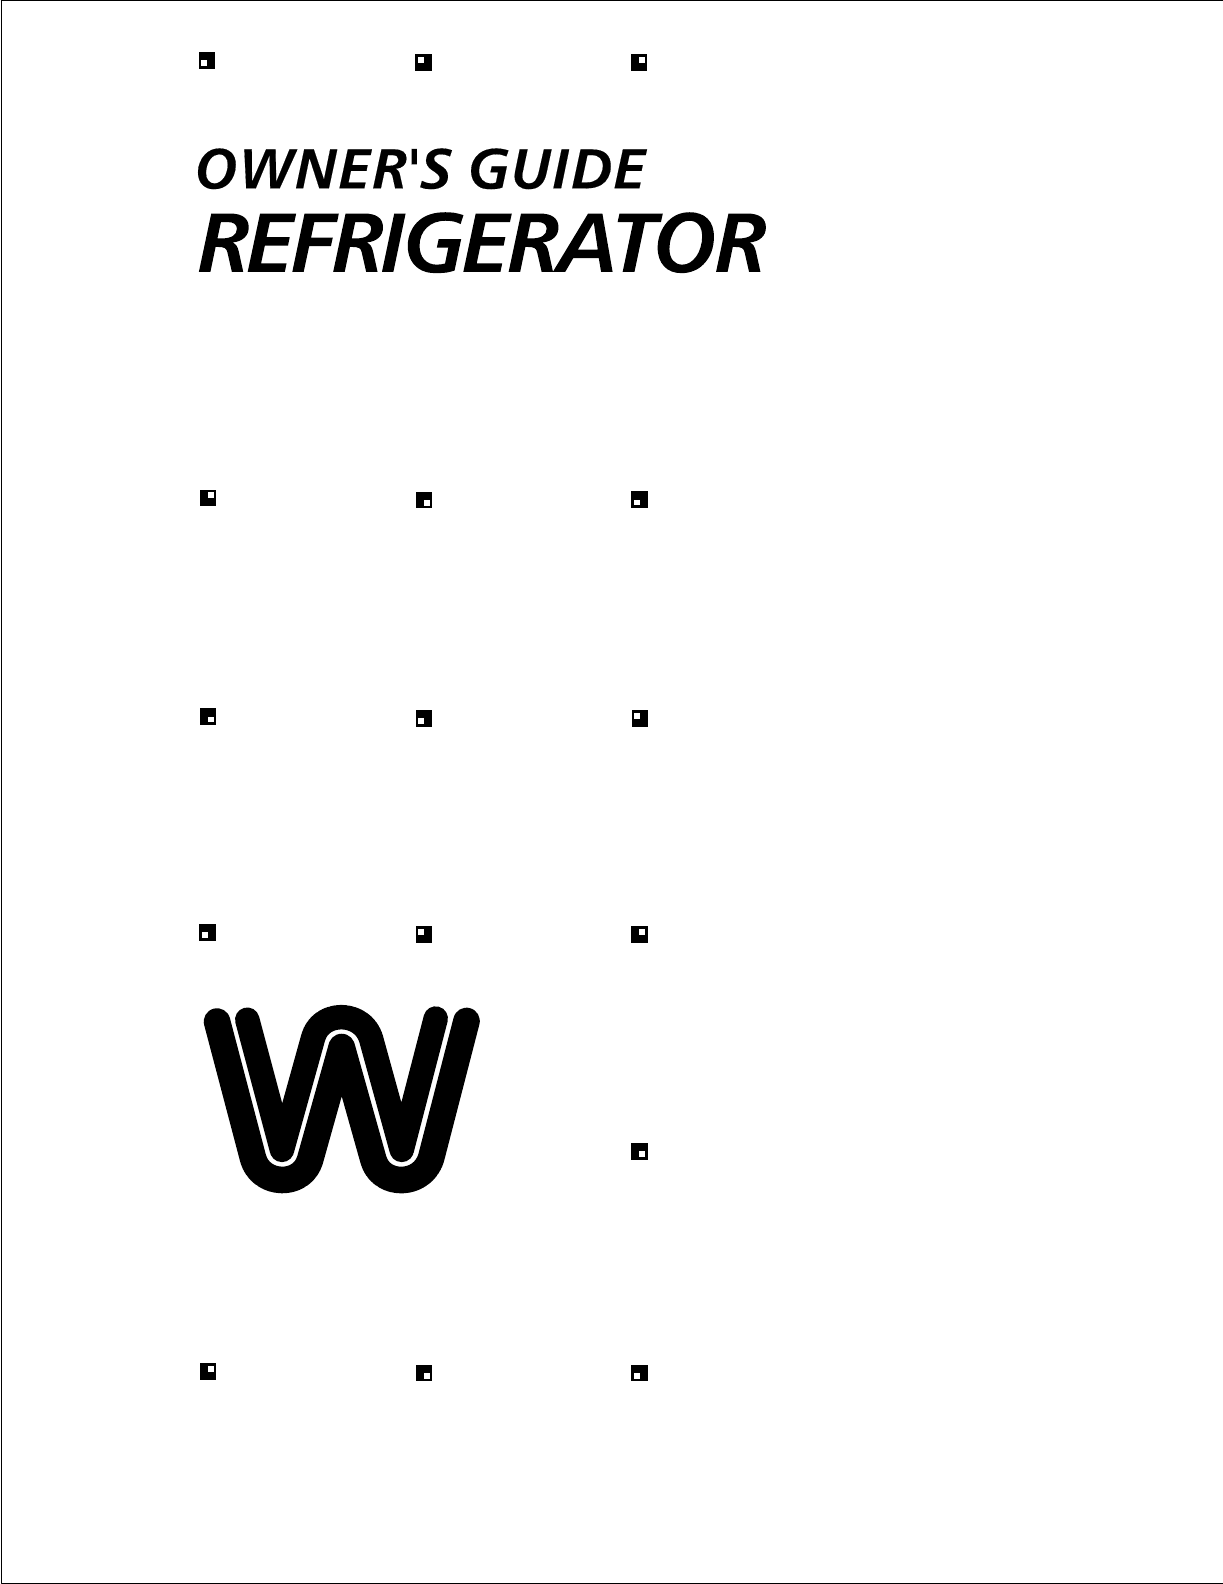 White-Westinghouse Refrigerator Top Freezer User Guide